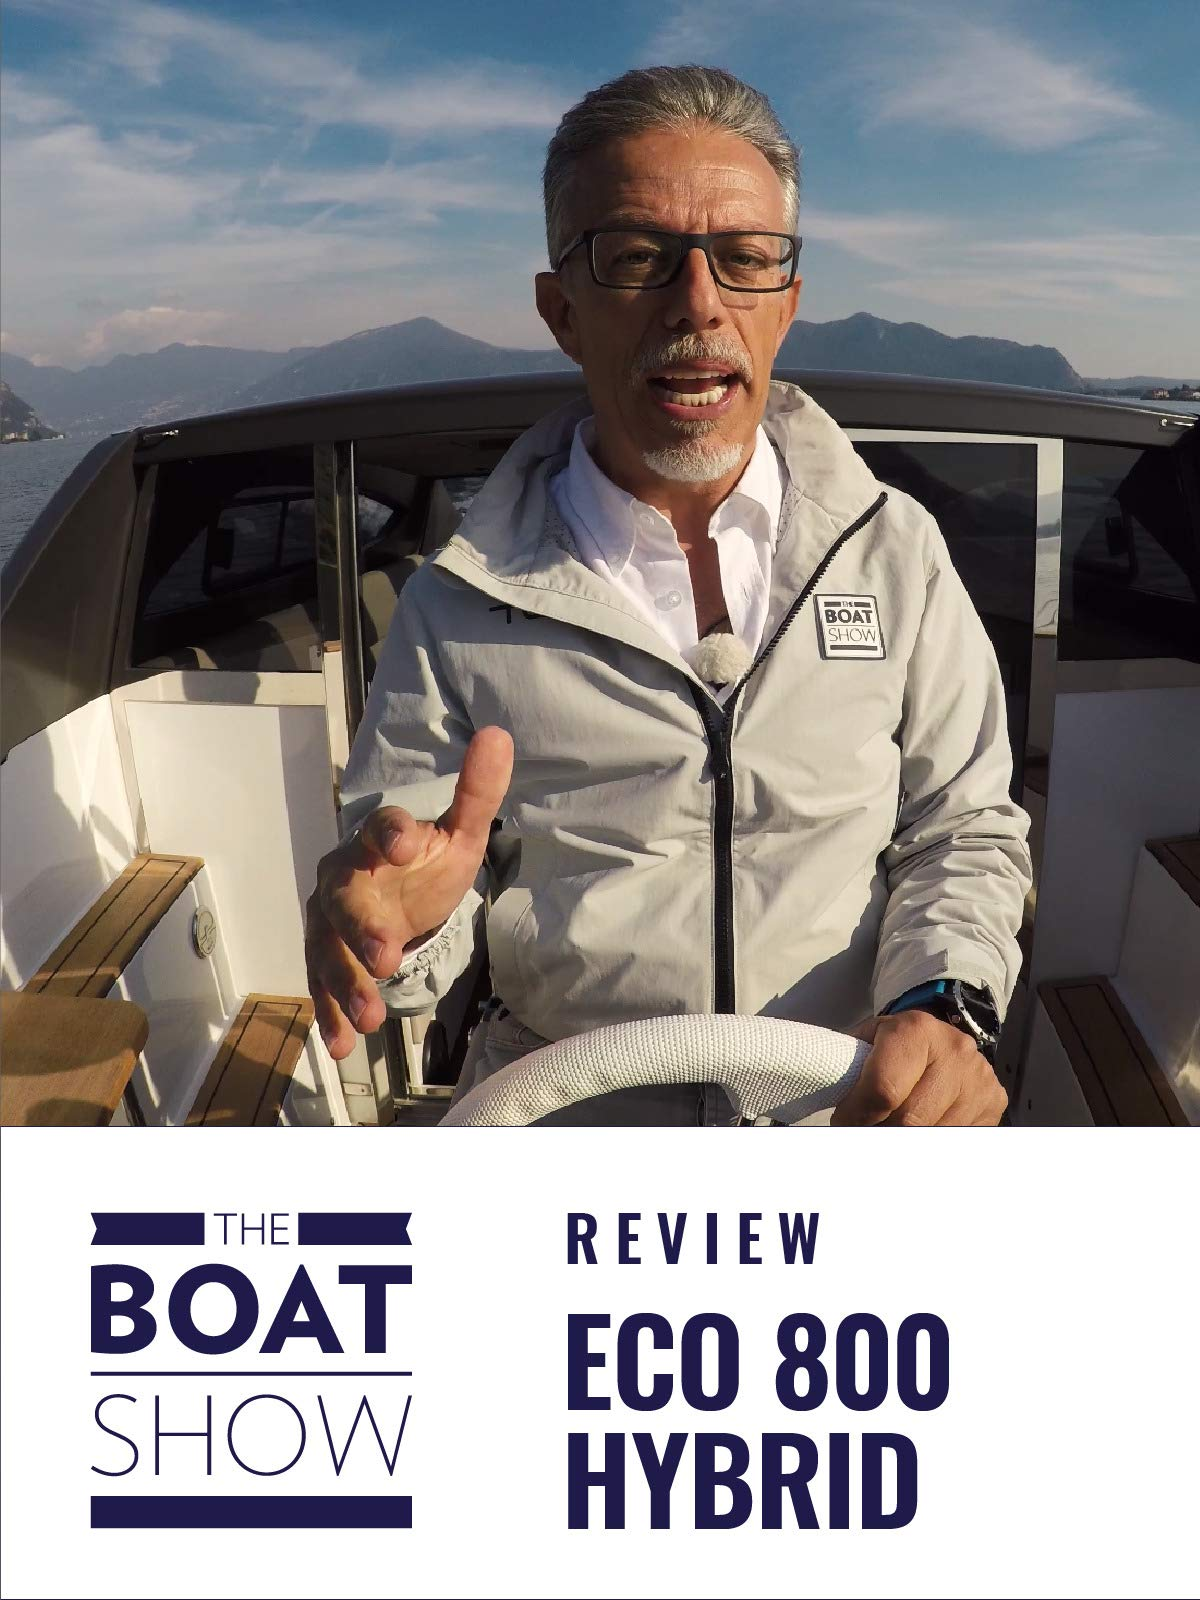 Clip: Eco 800 Hybrid - The Boat Show